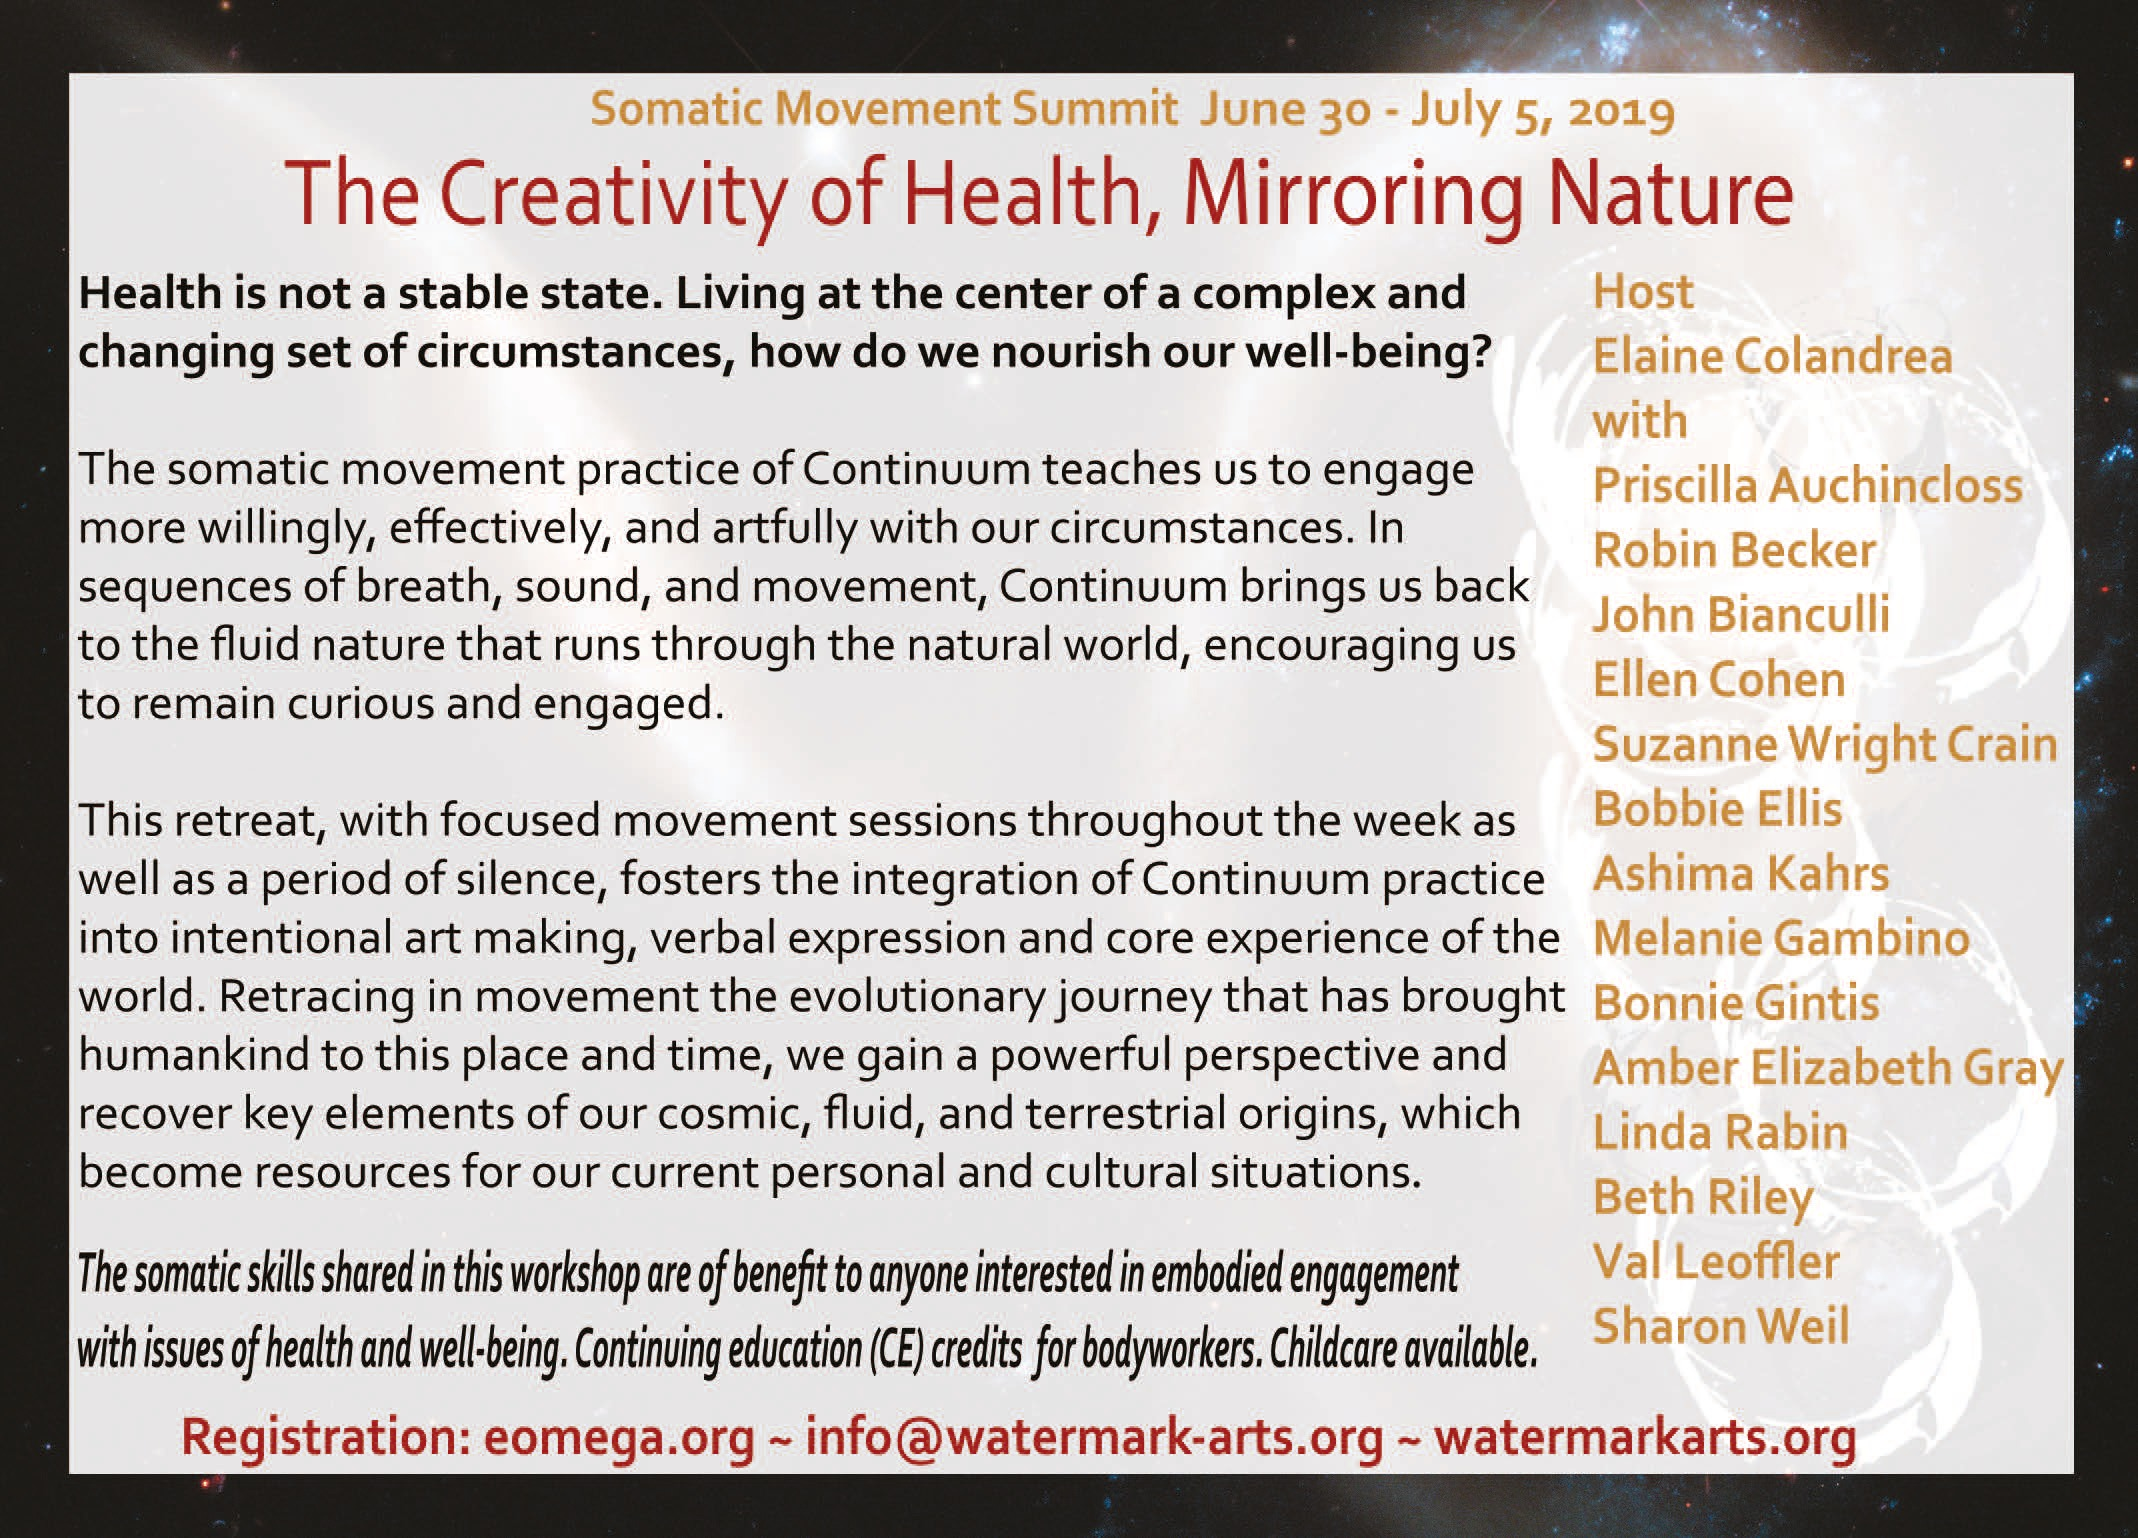 The Creativity of Health, Mirroring Nature